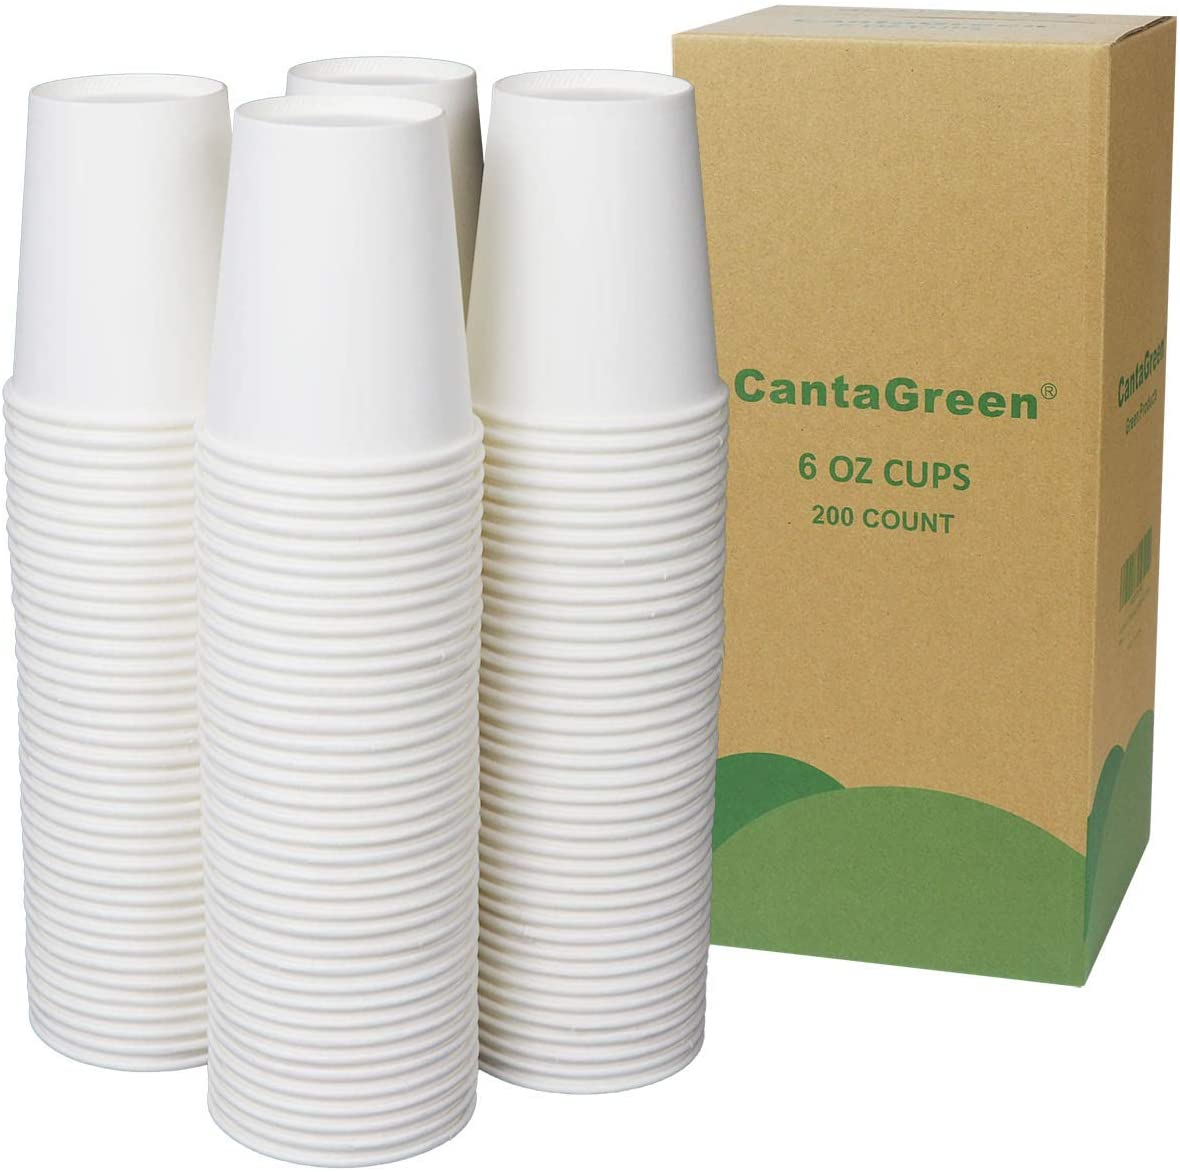 CantaGreen 6 OZ White Paper Cups,200 Count Heavyduty Disposable Hot and Cold Cup